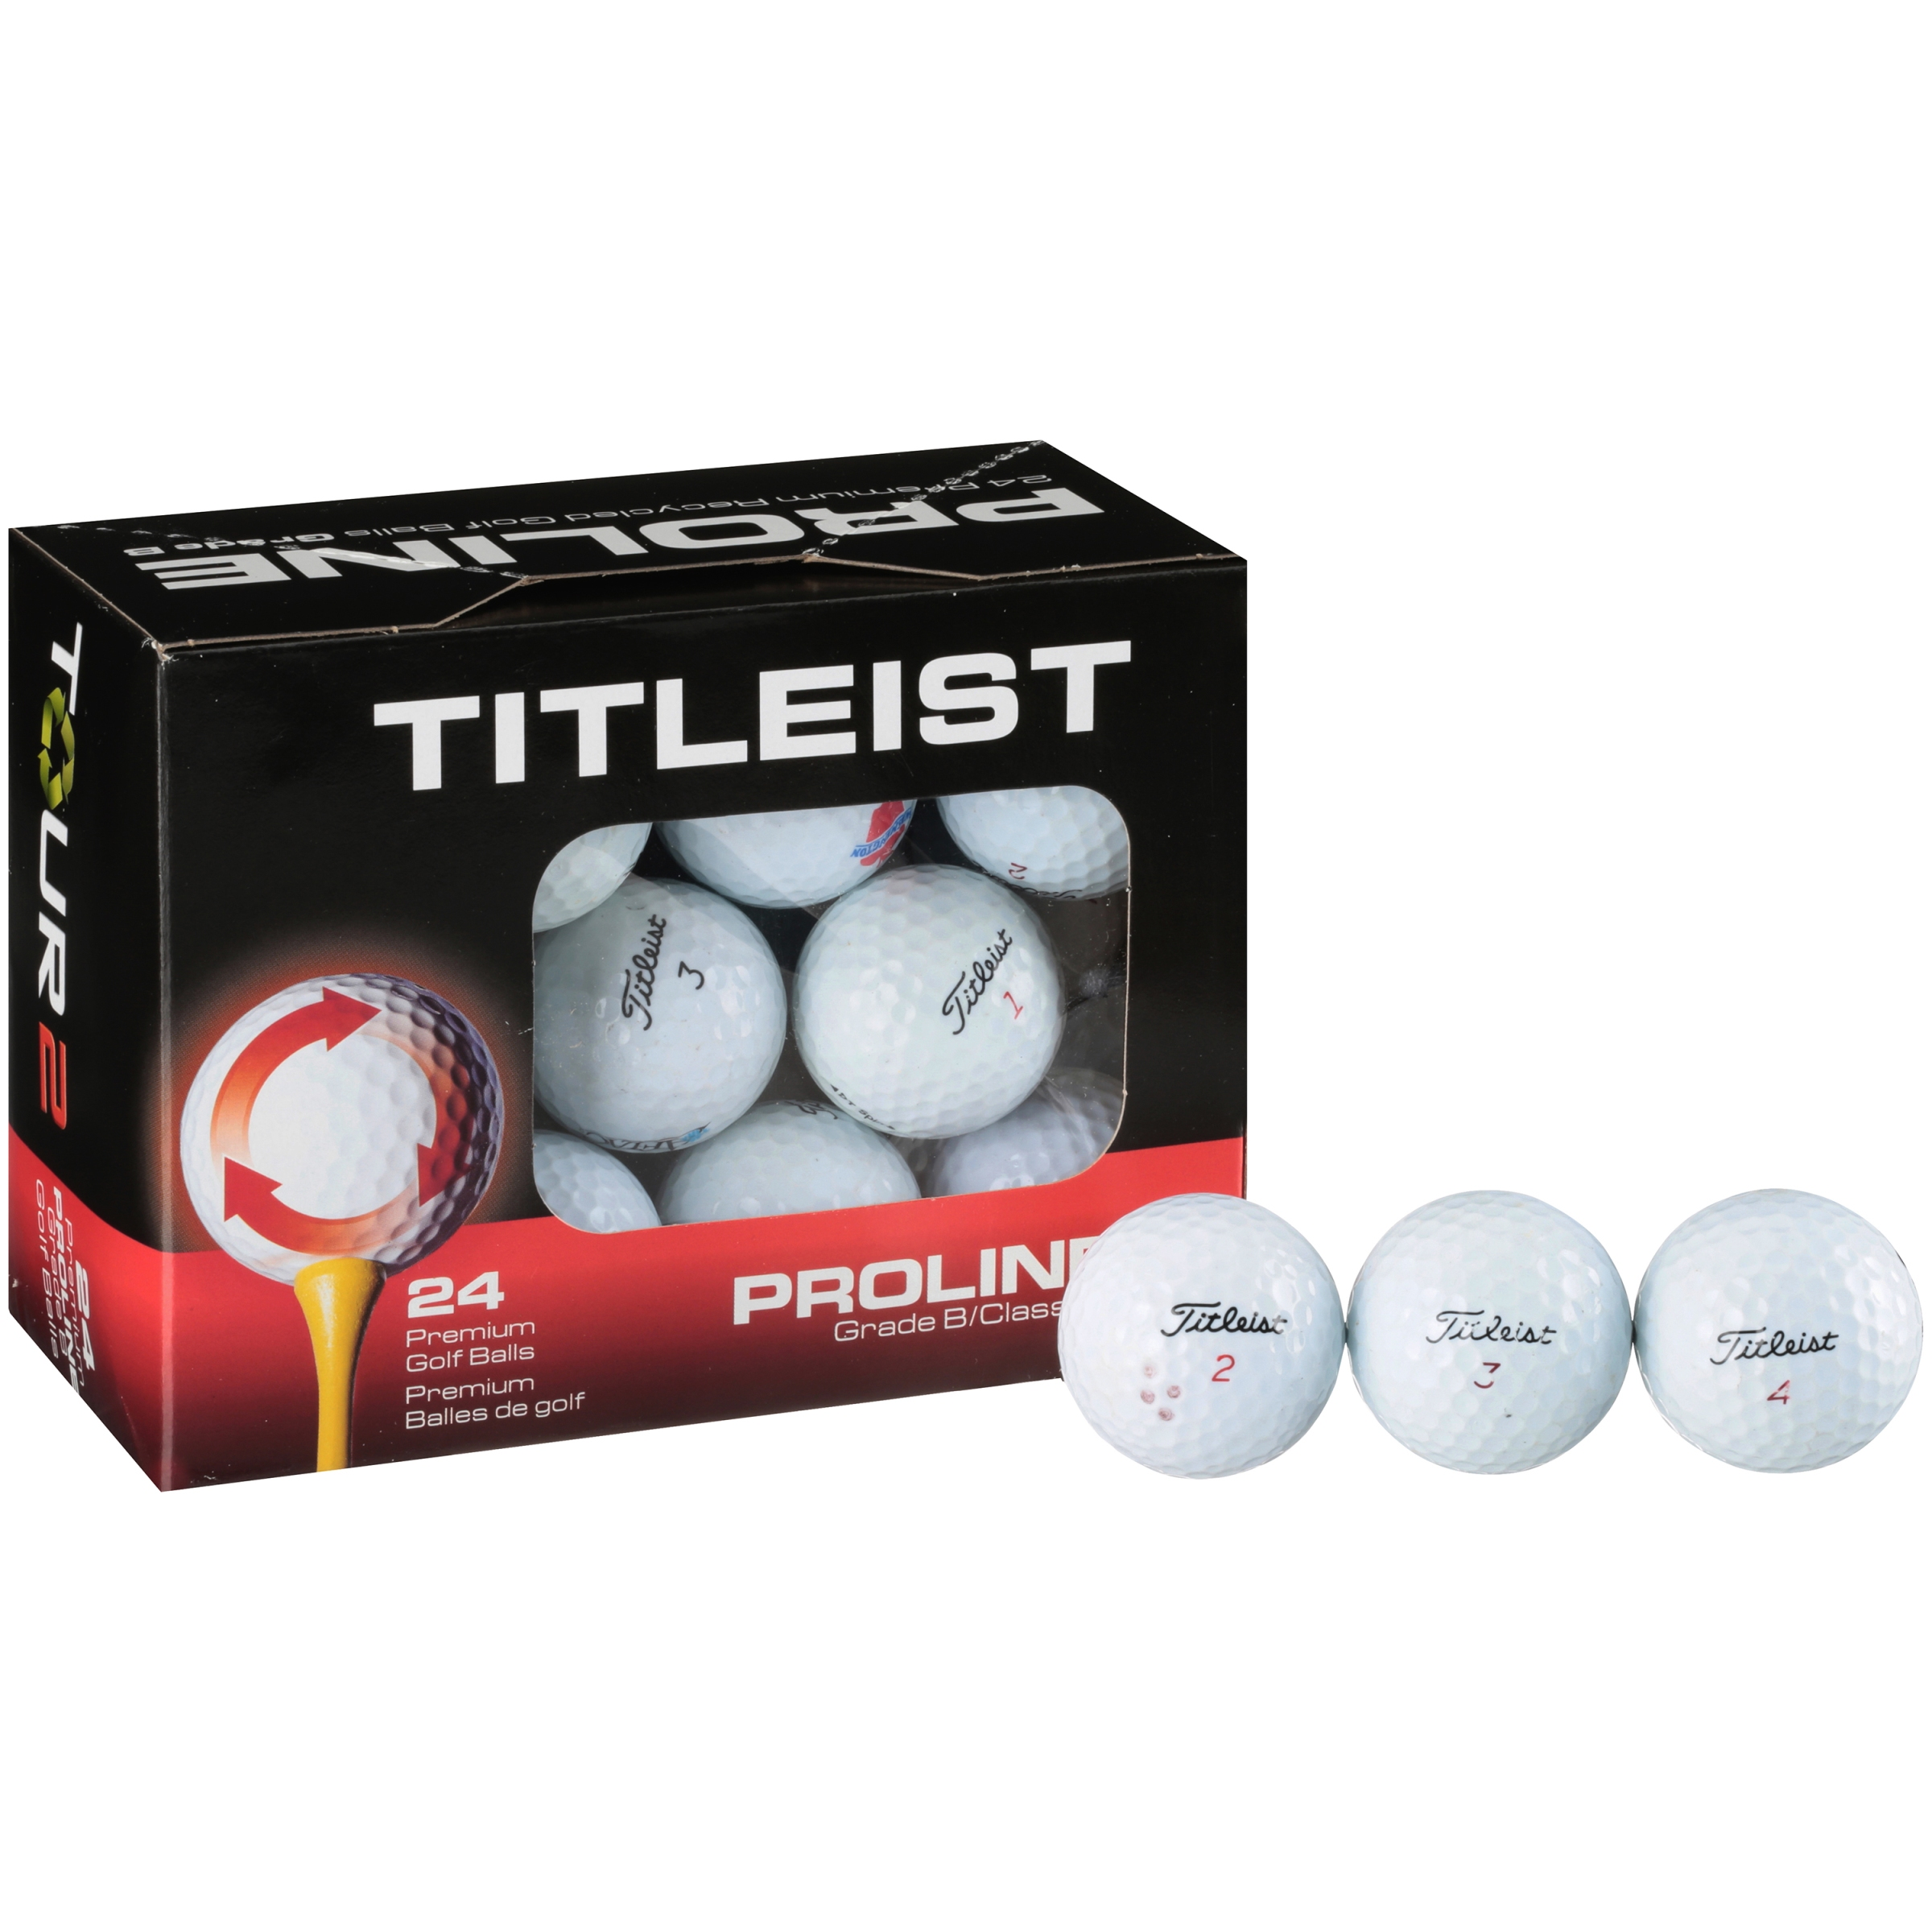 Titleist Proline Tour 2 Golf Balls, Grade B, 24 Pack